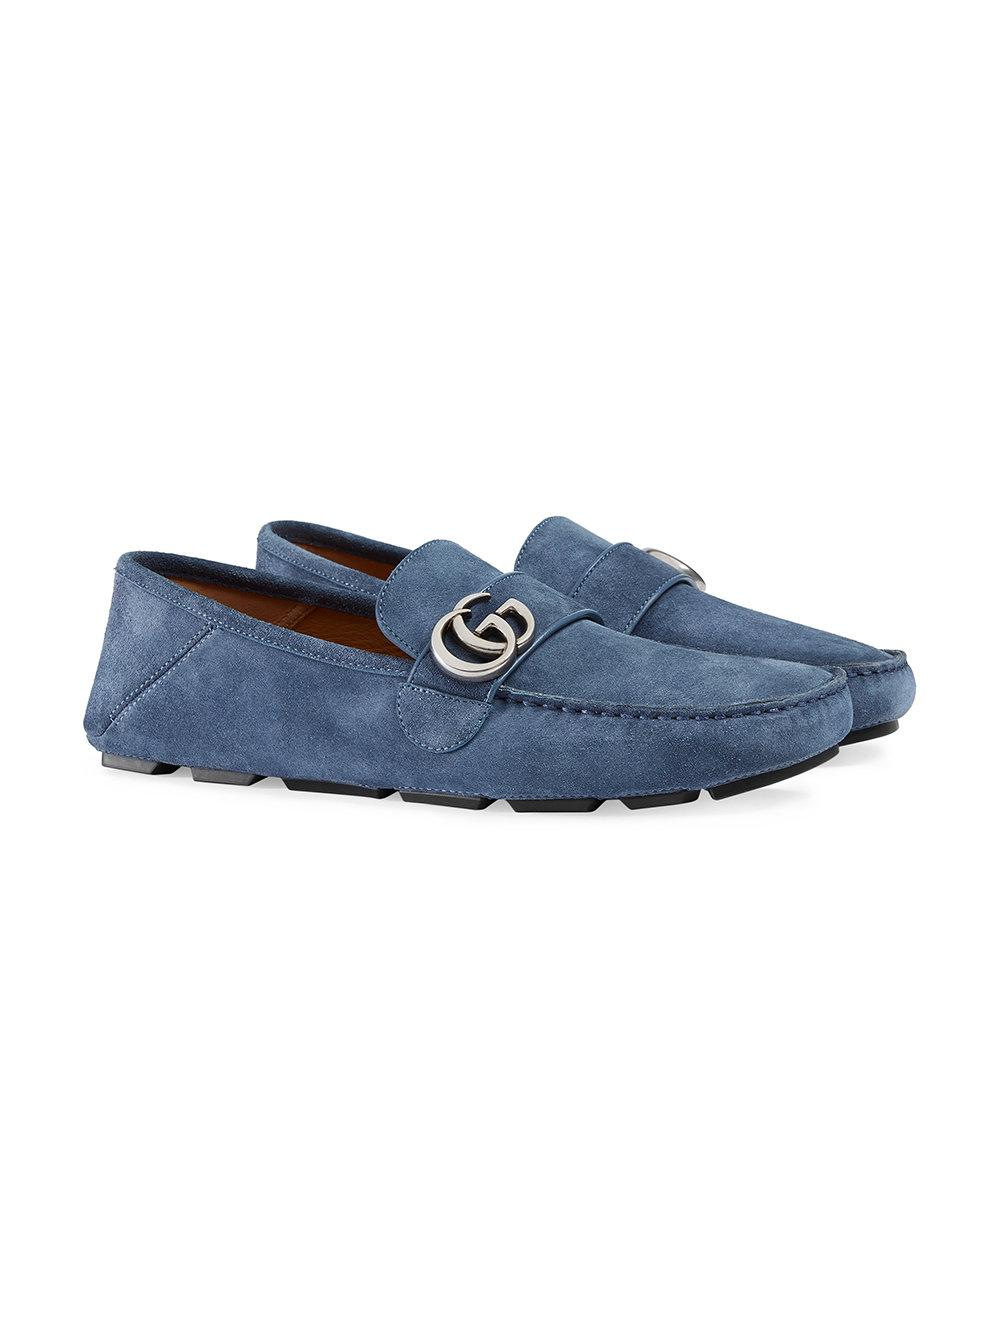 c41b89e3f2e Lyst - Gucci Suede Driver With Double G in Blue for Men